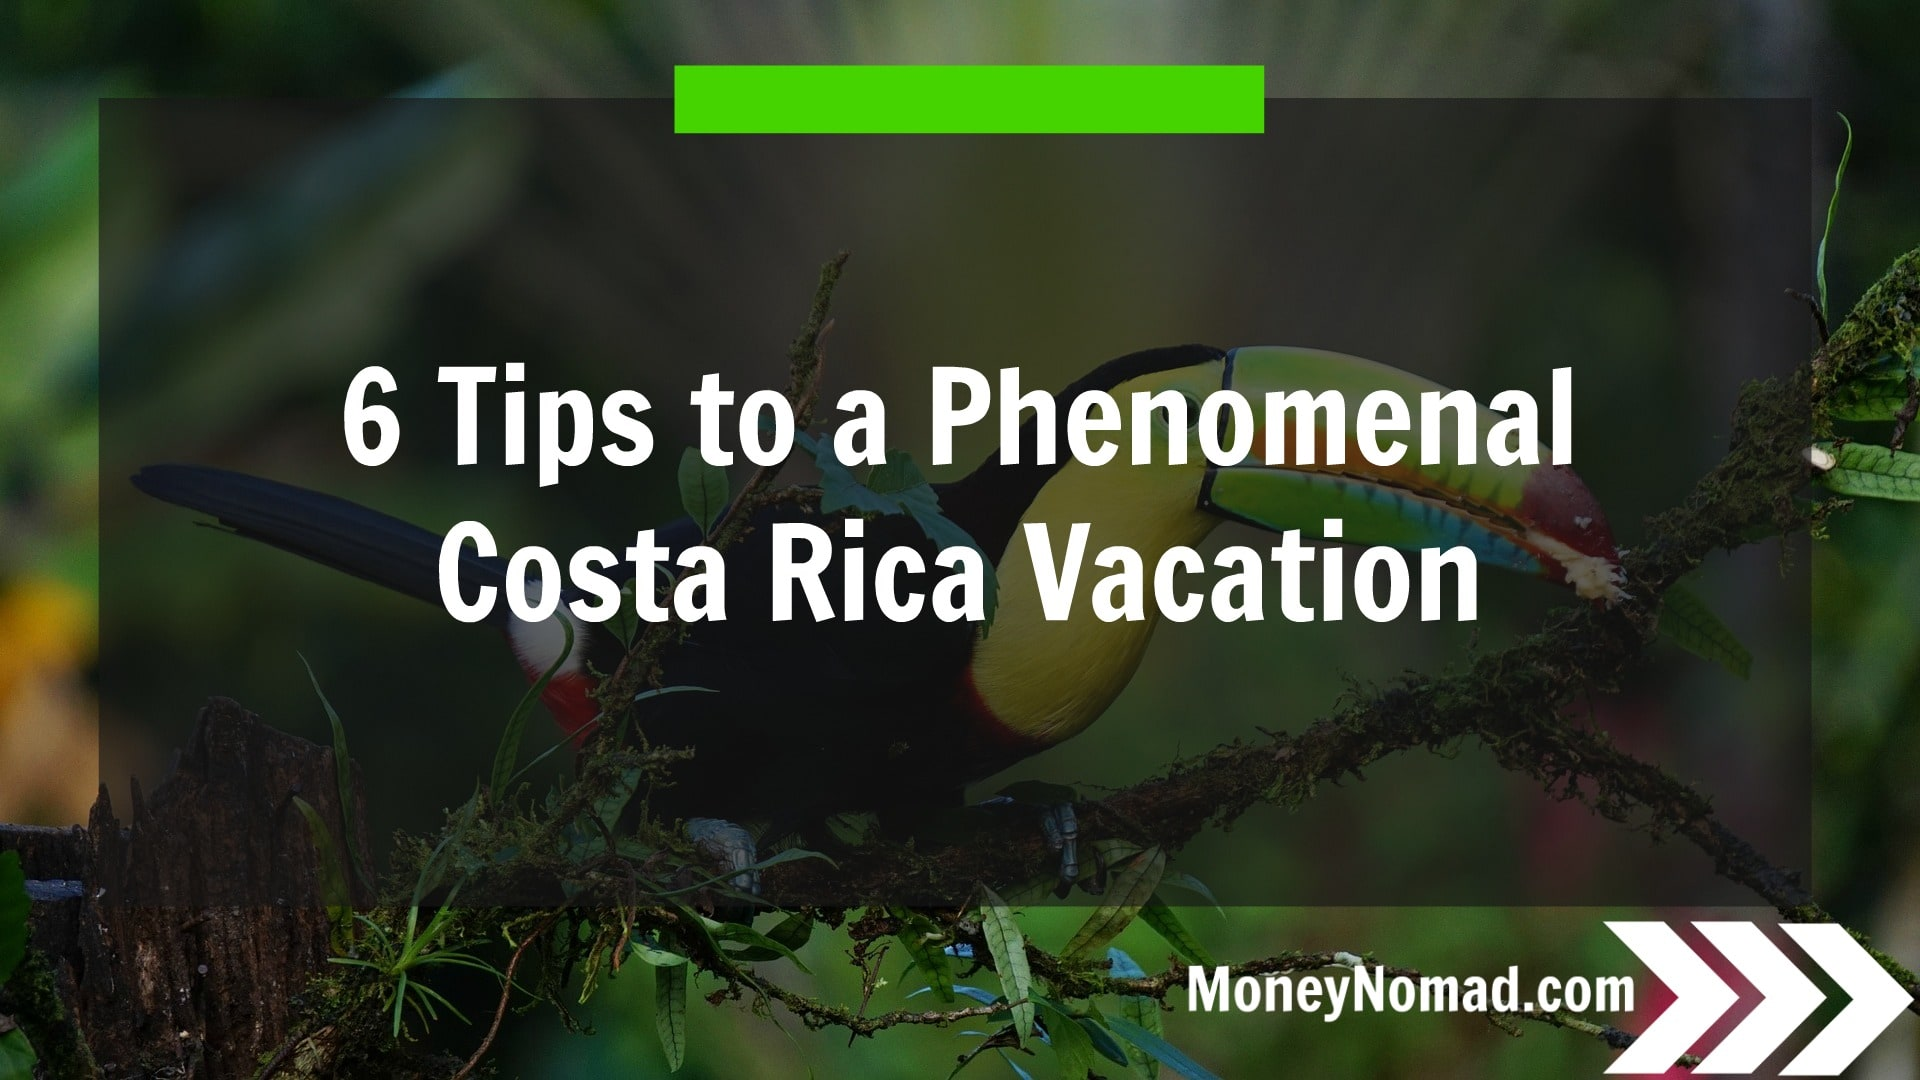 mn-6-tips-to-a-phenomenal-costa-rica-vacation